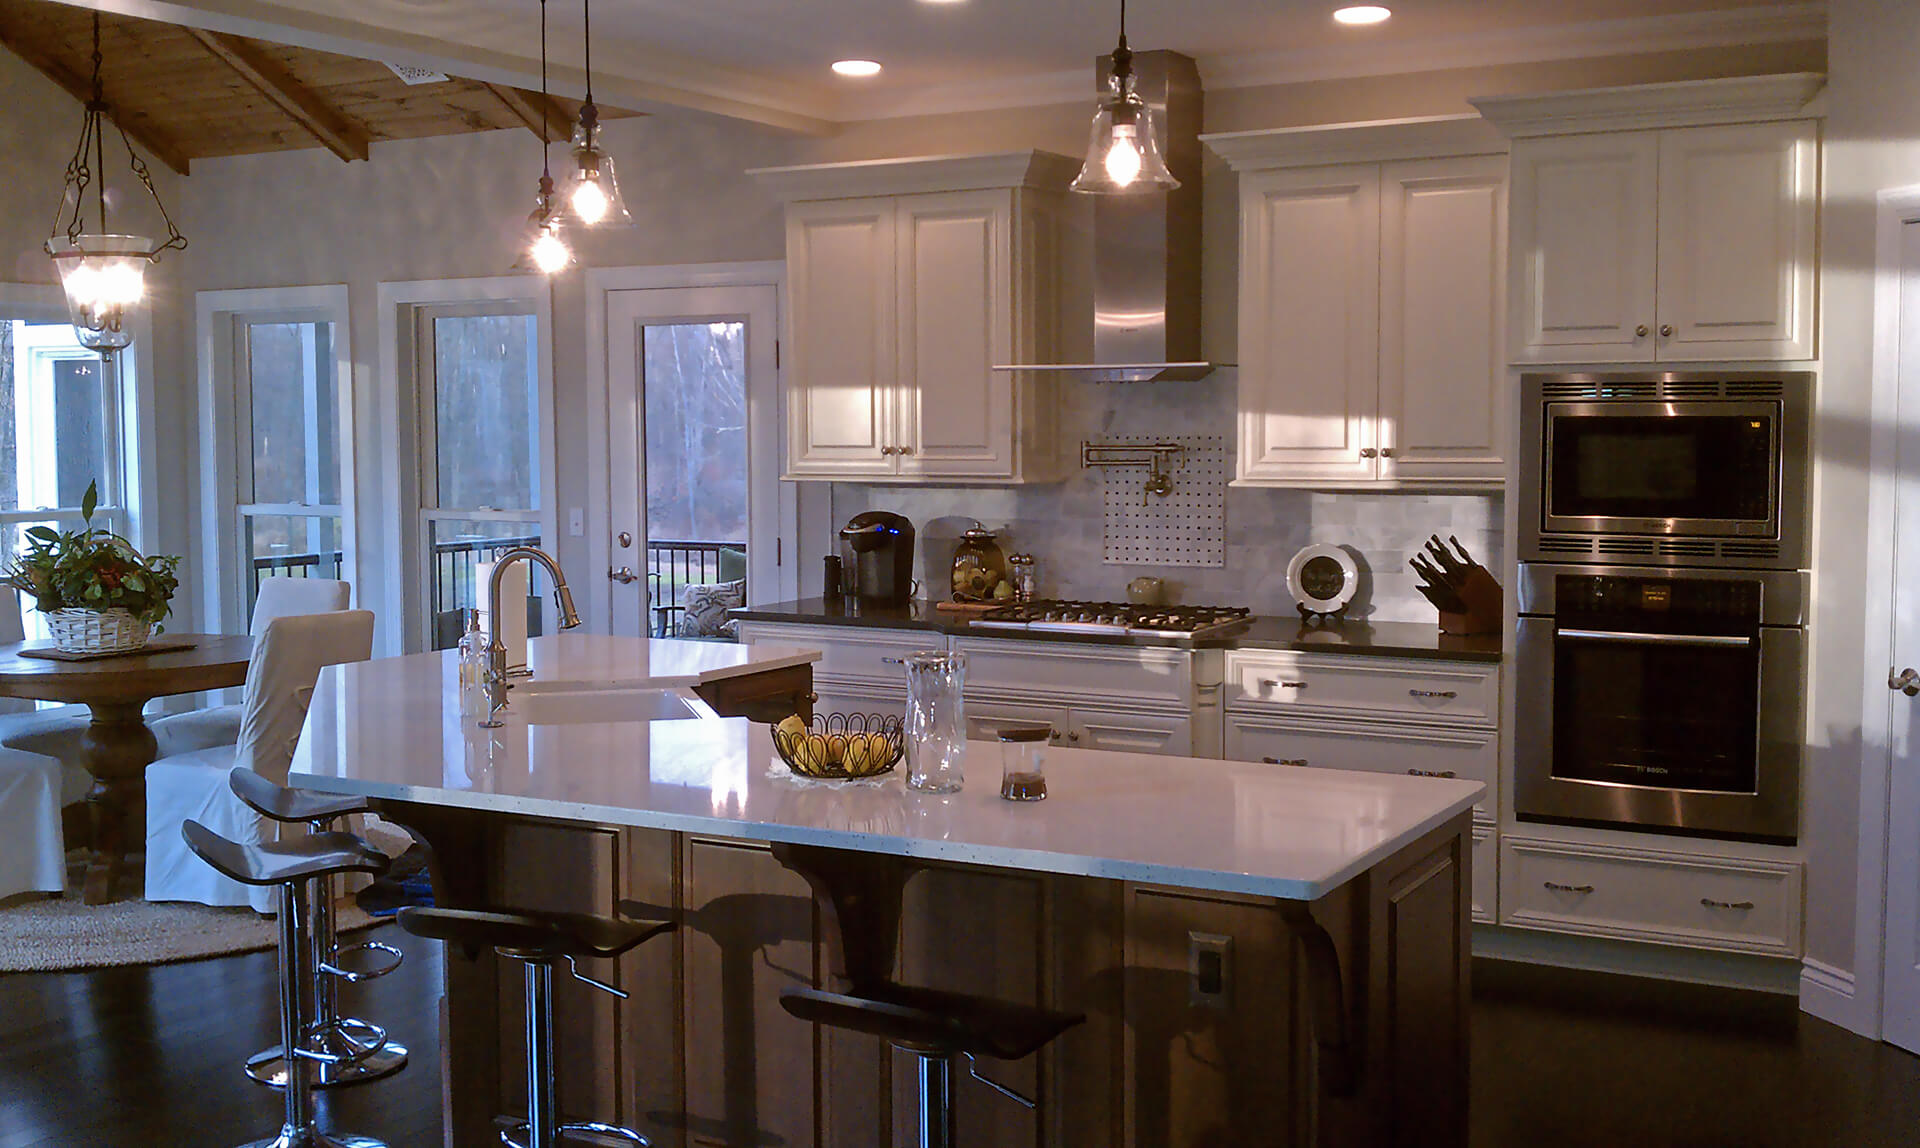 remodel works bath & kitchen small pantry ideas kinetic and gallery photo 16